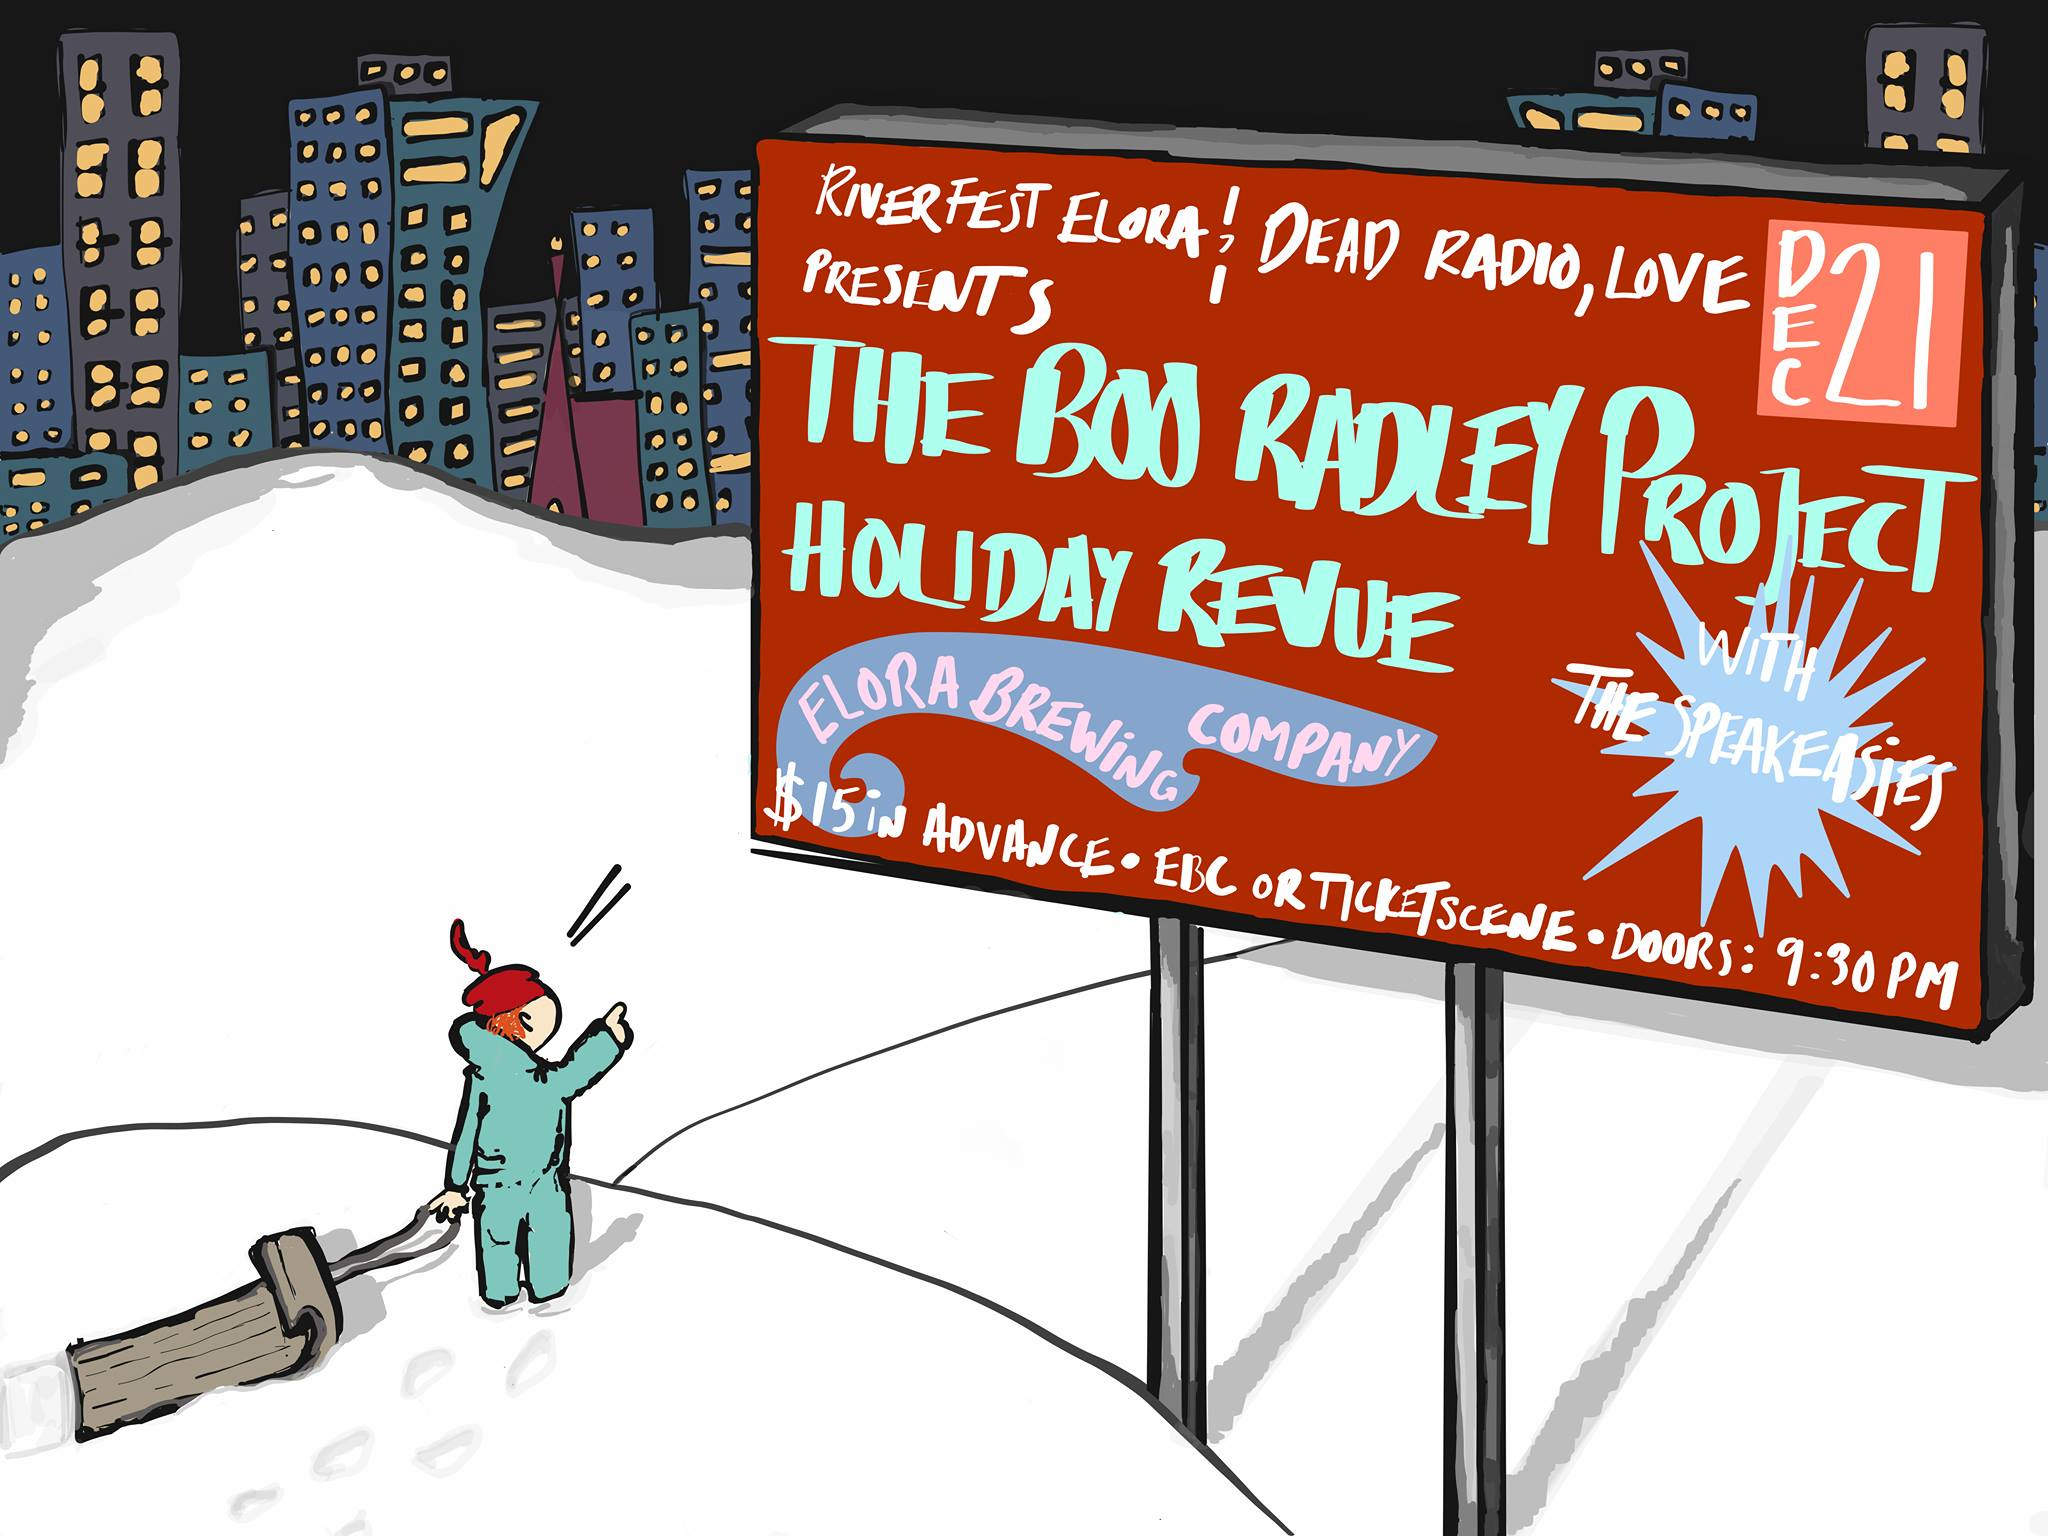 The Boo Radley Project Holiday Revue